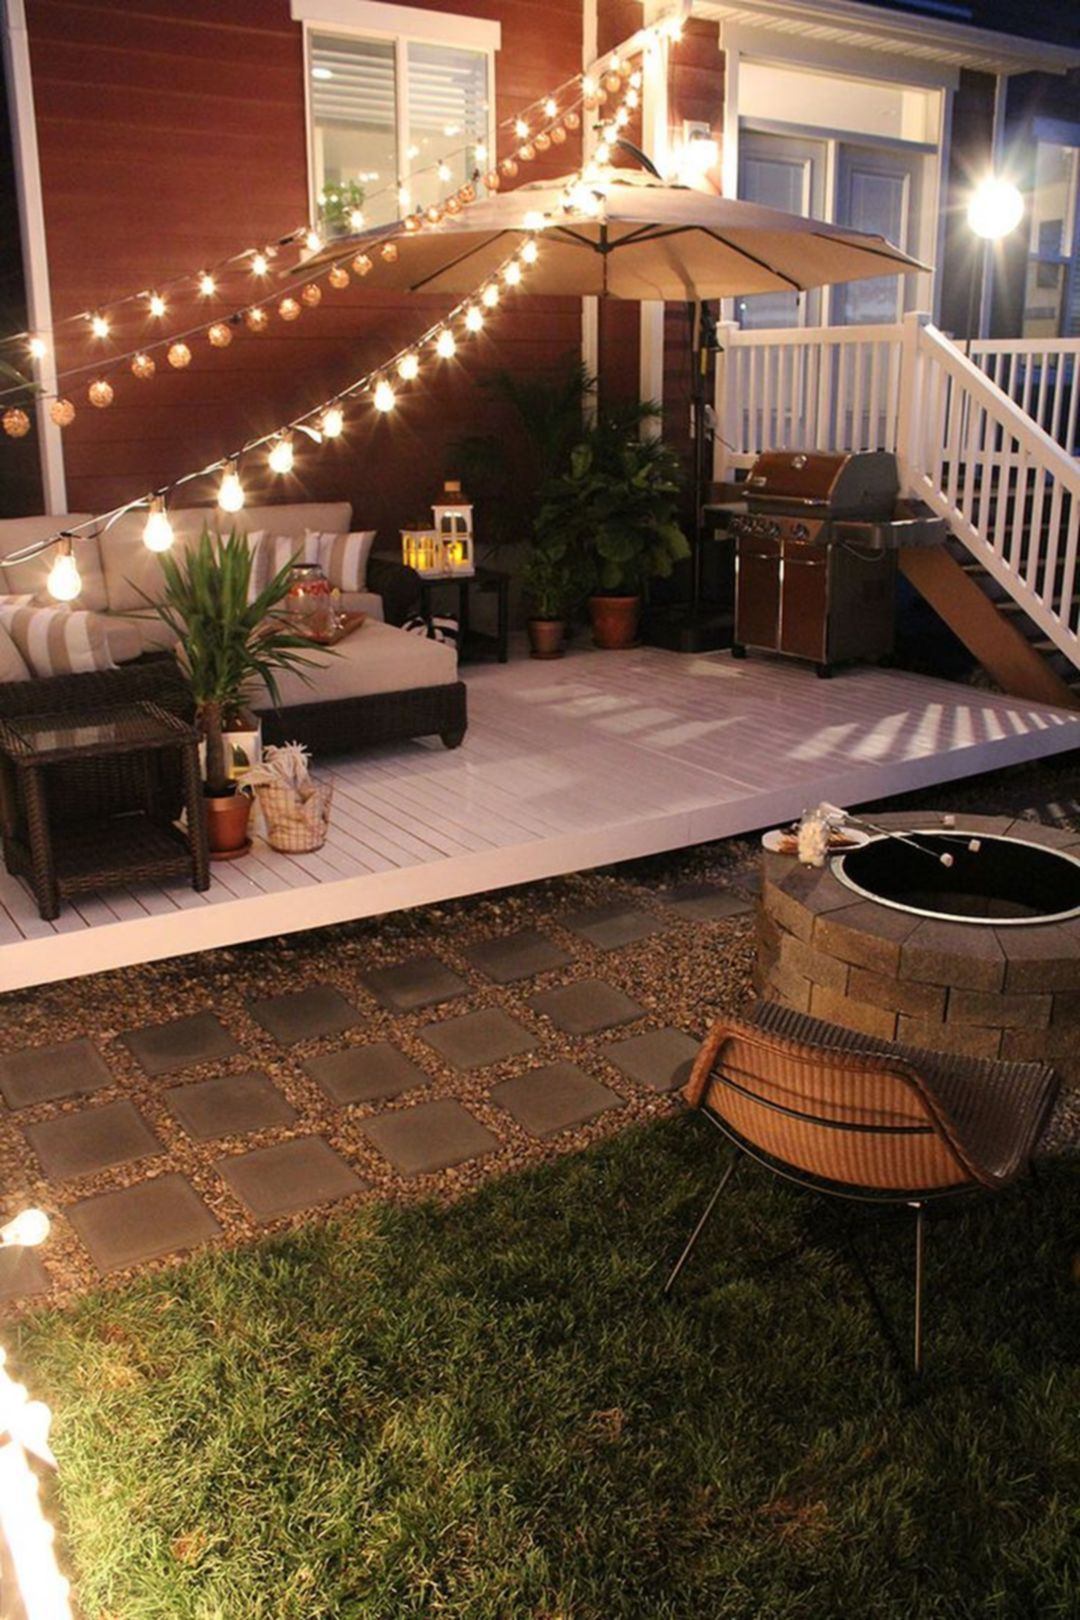 decoration for landscape on a budget | Top 20 Wonderful Deck Decorating Ideas On a Budget ...